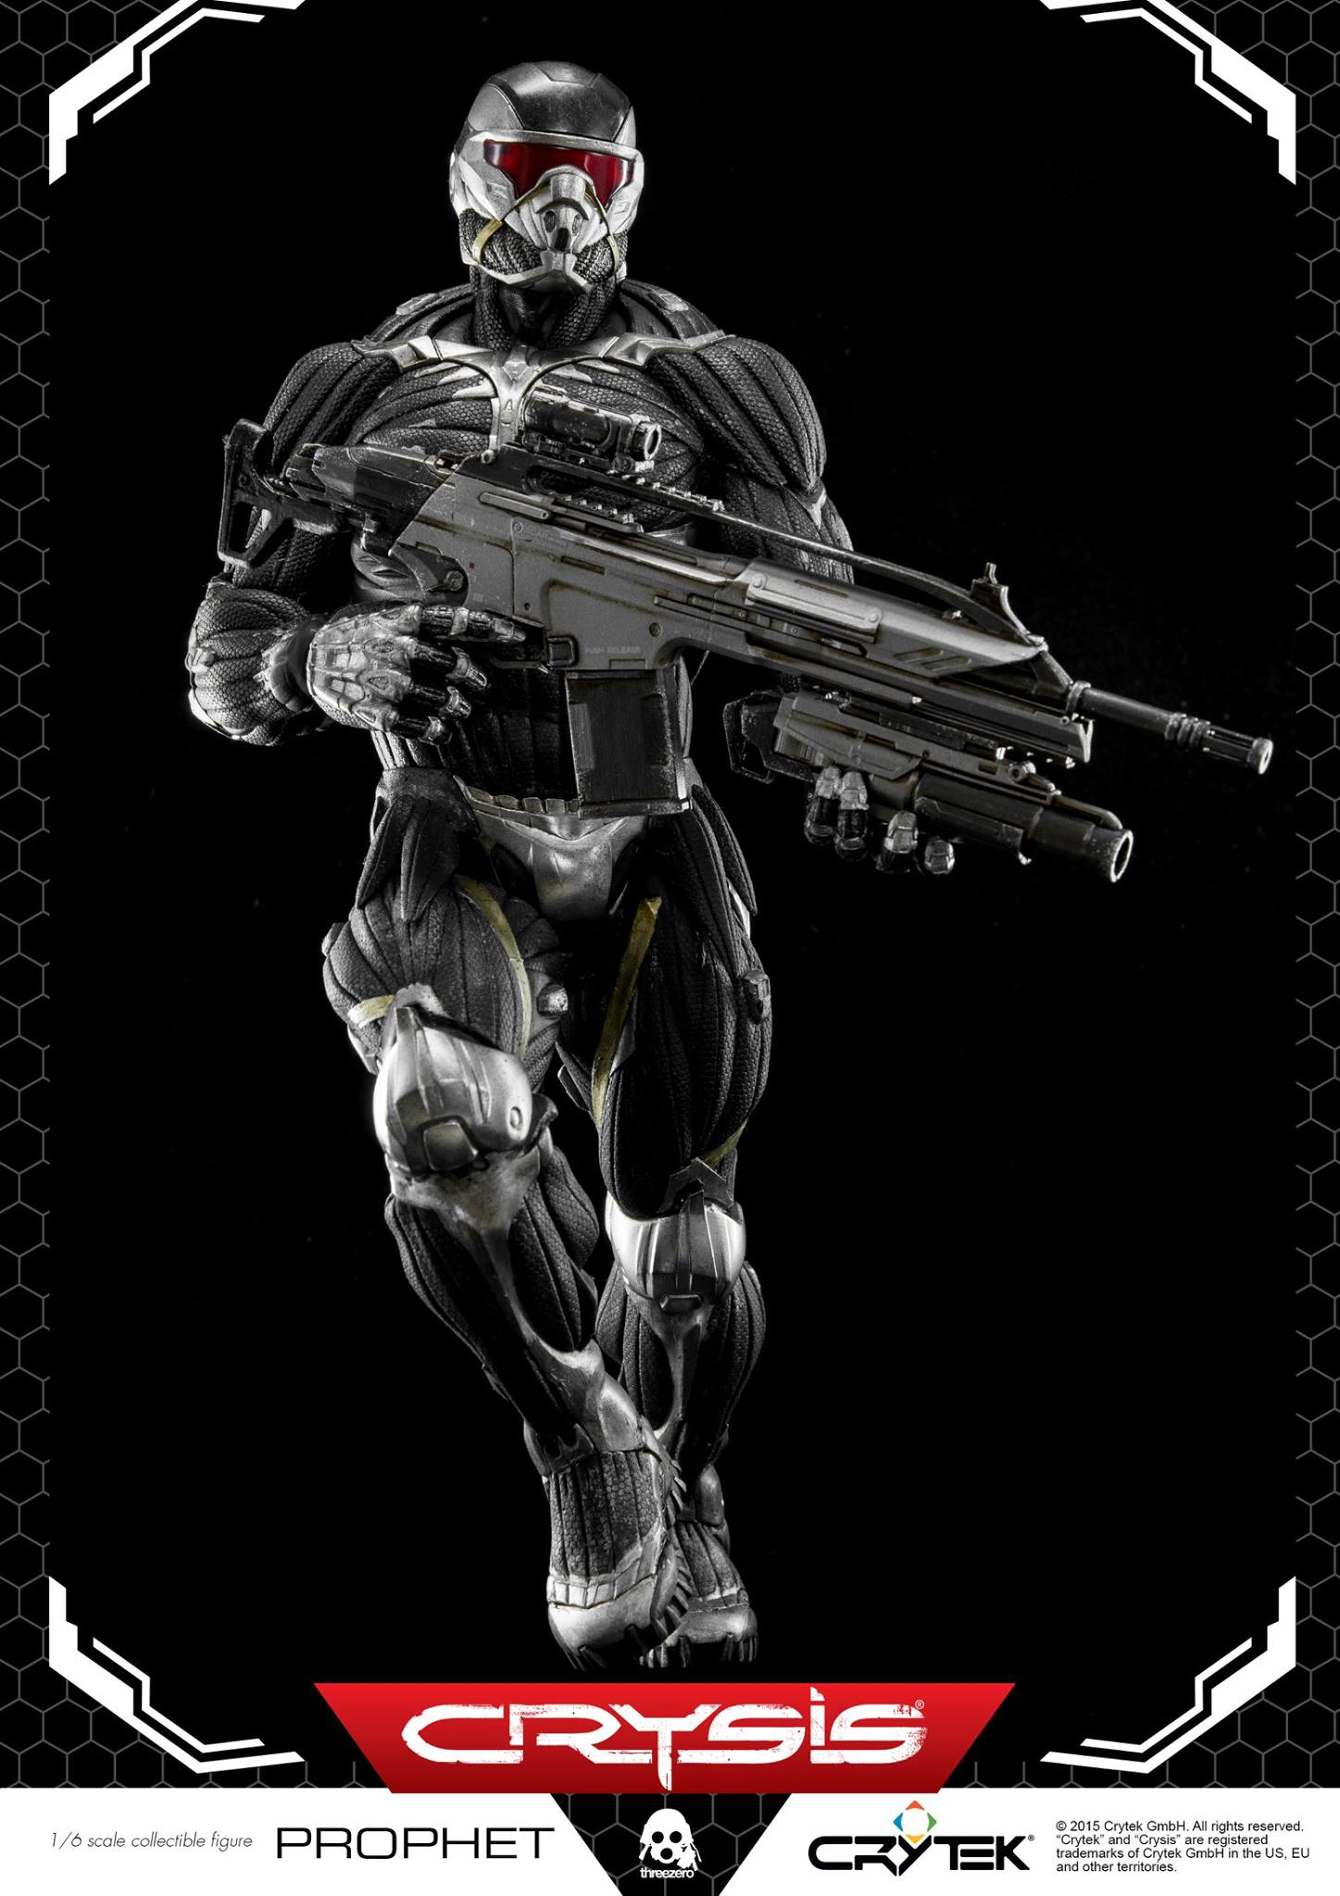 ThreeZero-Crysis-video-game-Prophet-CRY16_1340_c.jpg